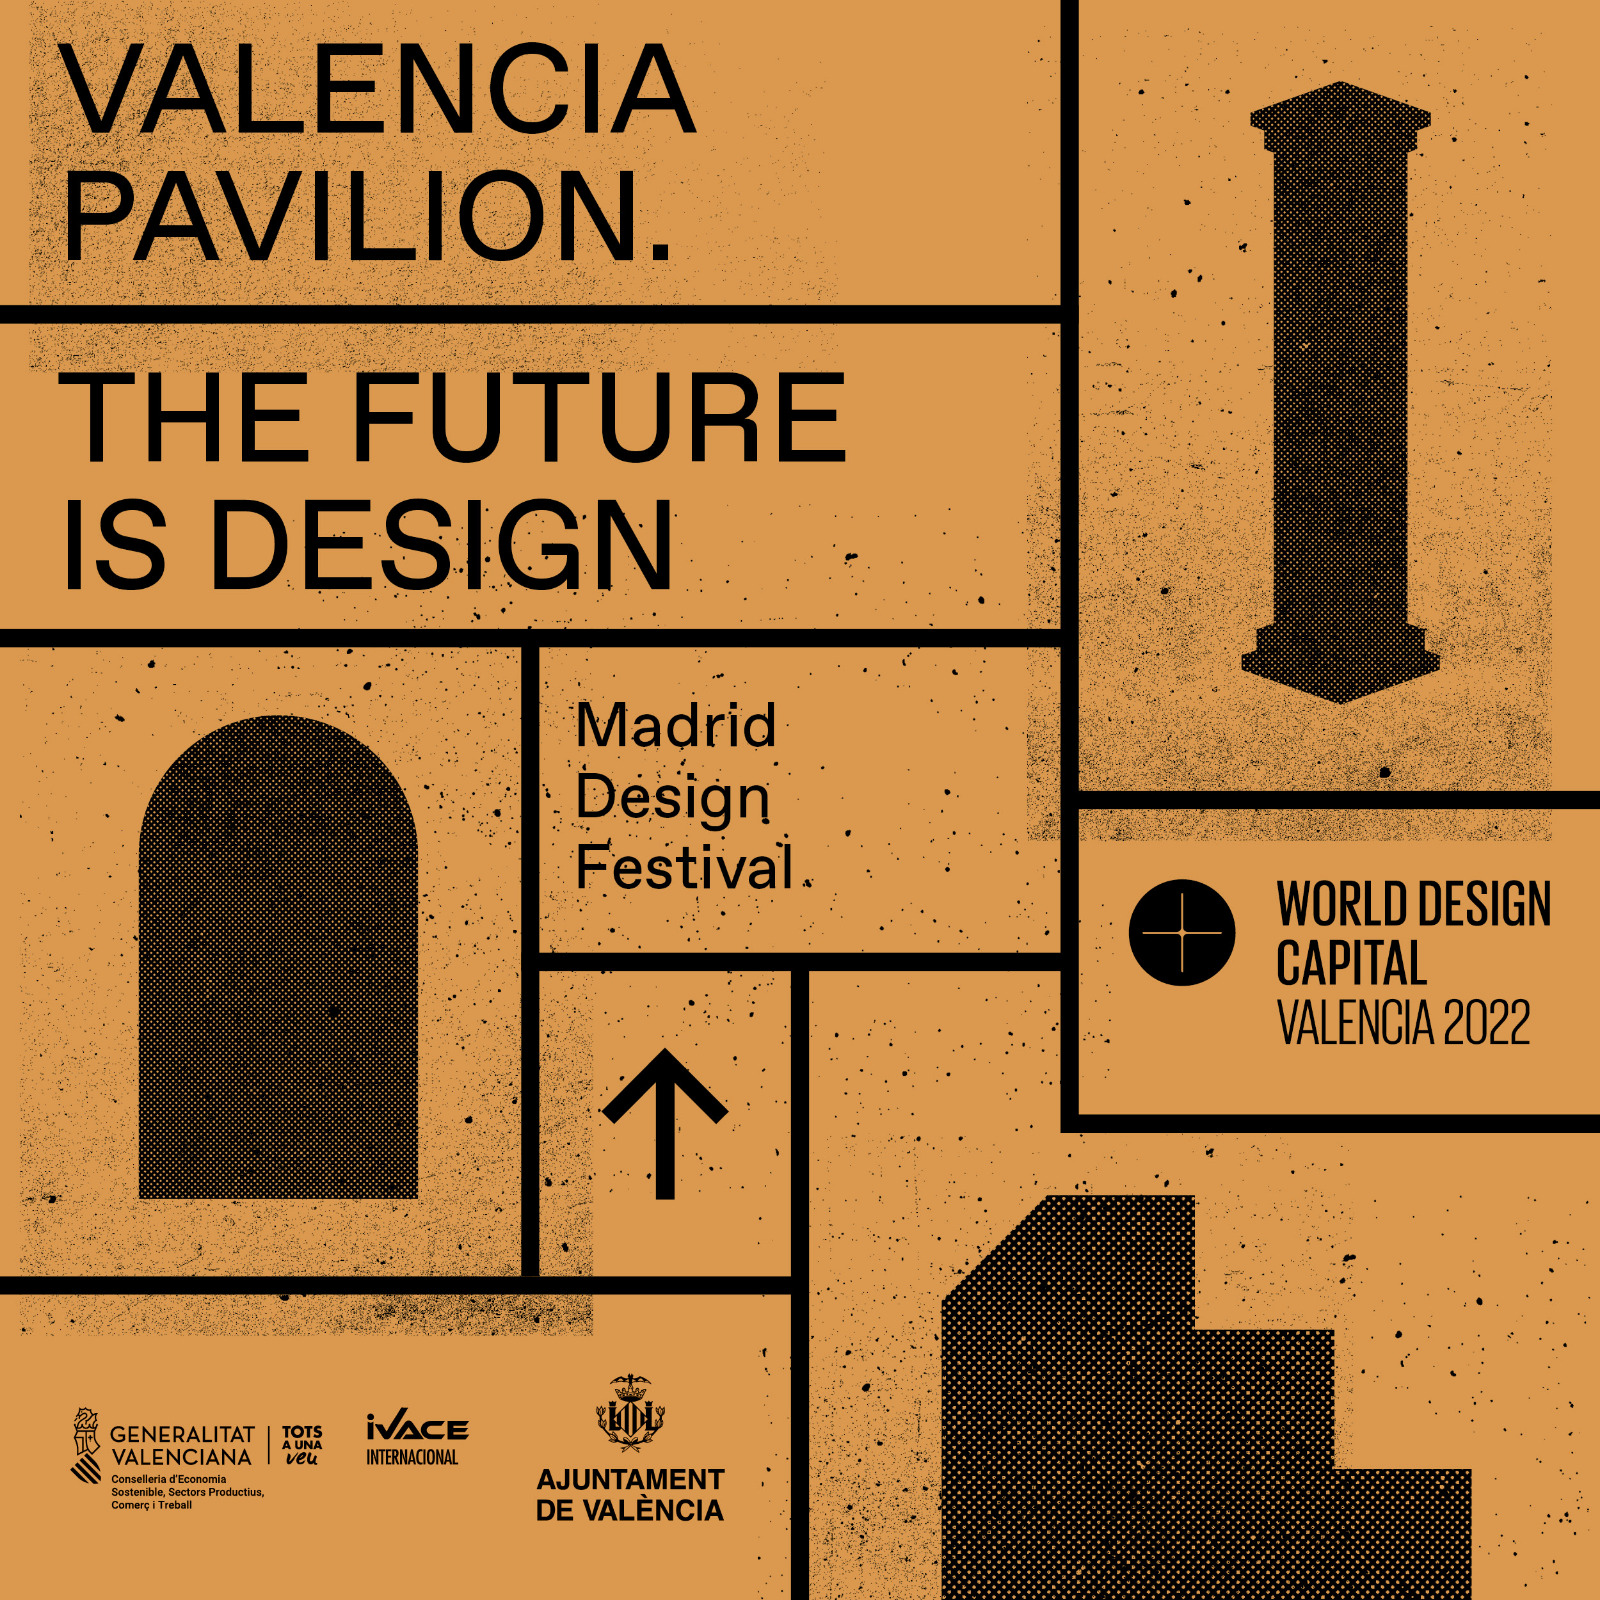 Madrid-design-festival-2021-design-valenziano-World-design-capital-Valencia-2022